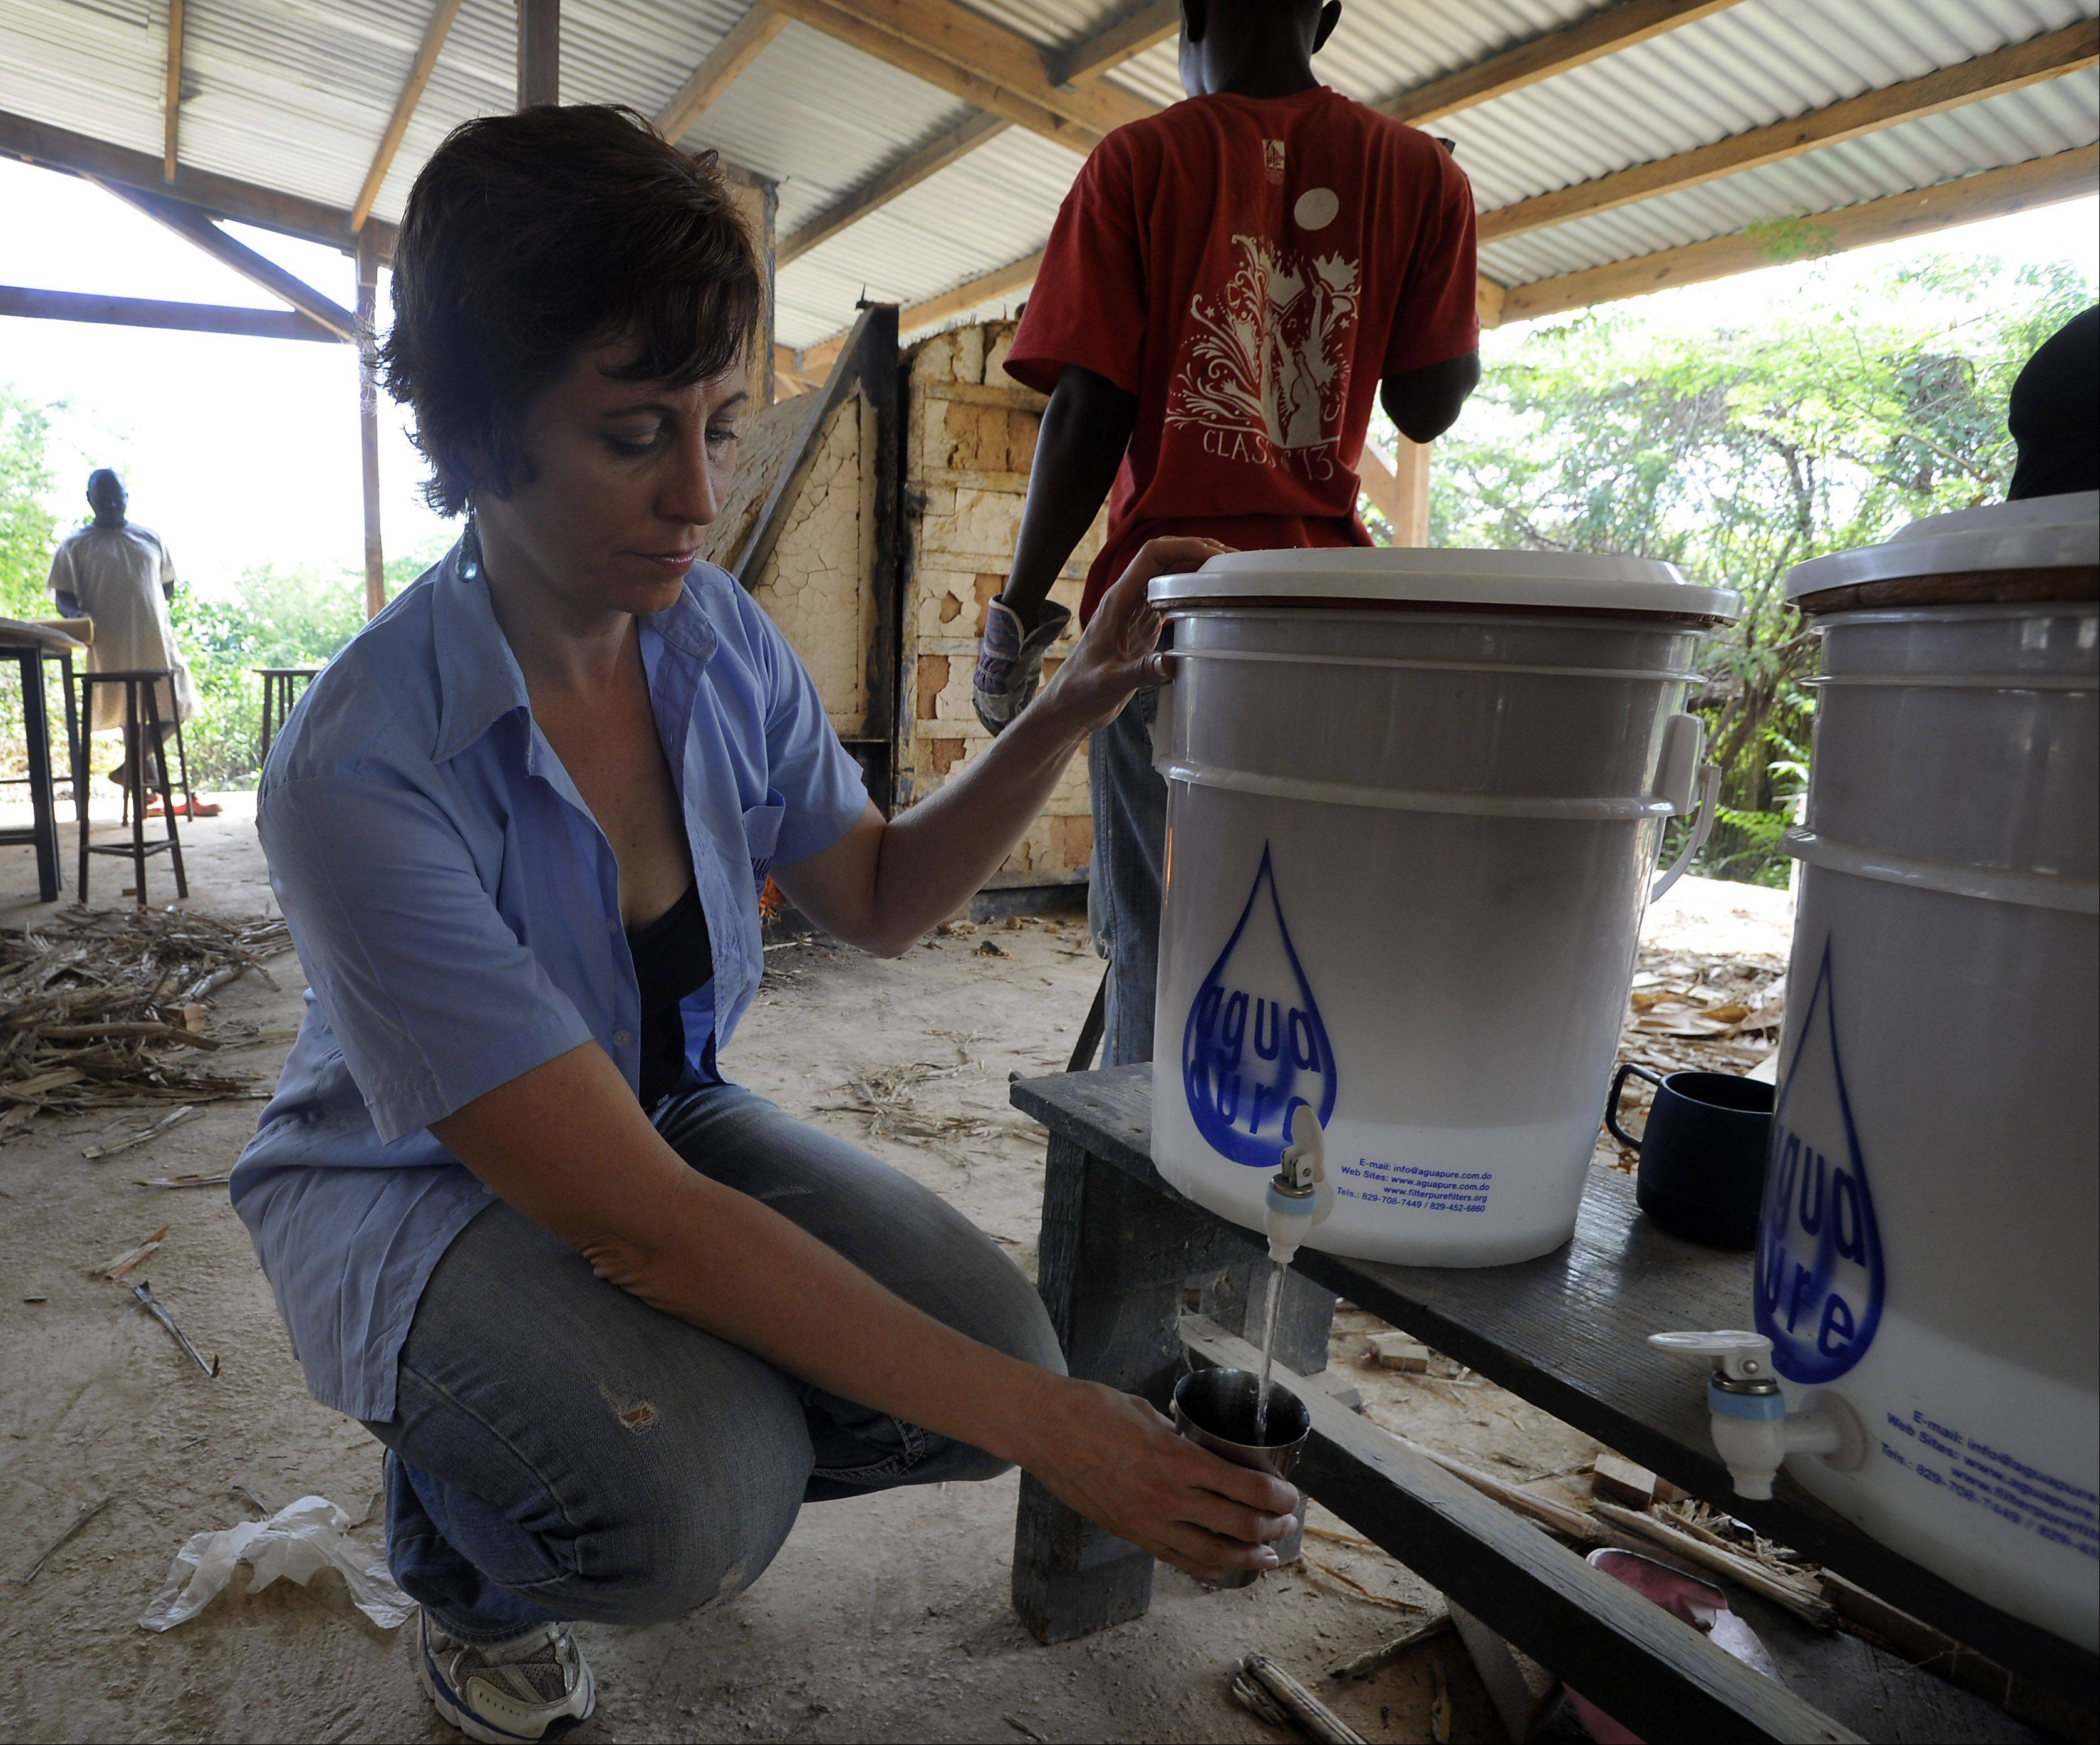 Lisa Ballantine, director of FilterPure, takes a drink from one of her charity's water filters in a factory in Jacmel, Haiti, as workers fire more filters in the kiln behind her.